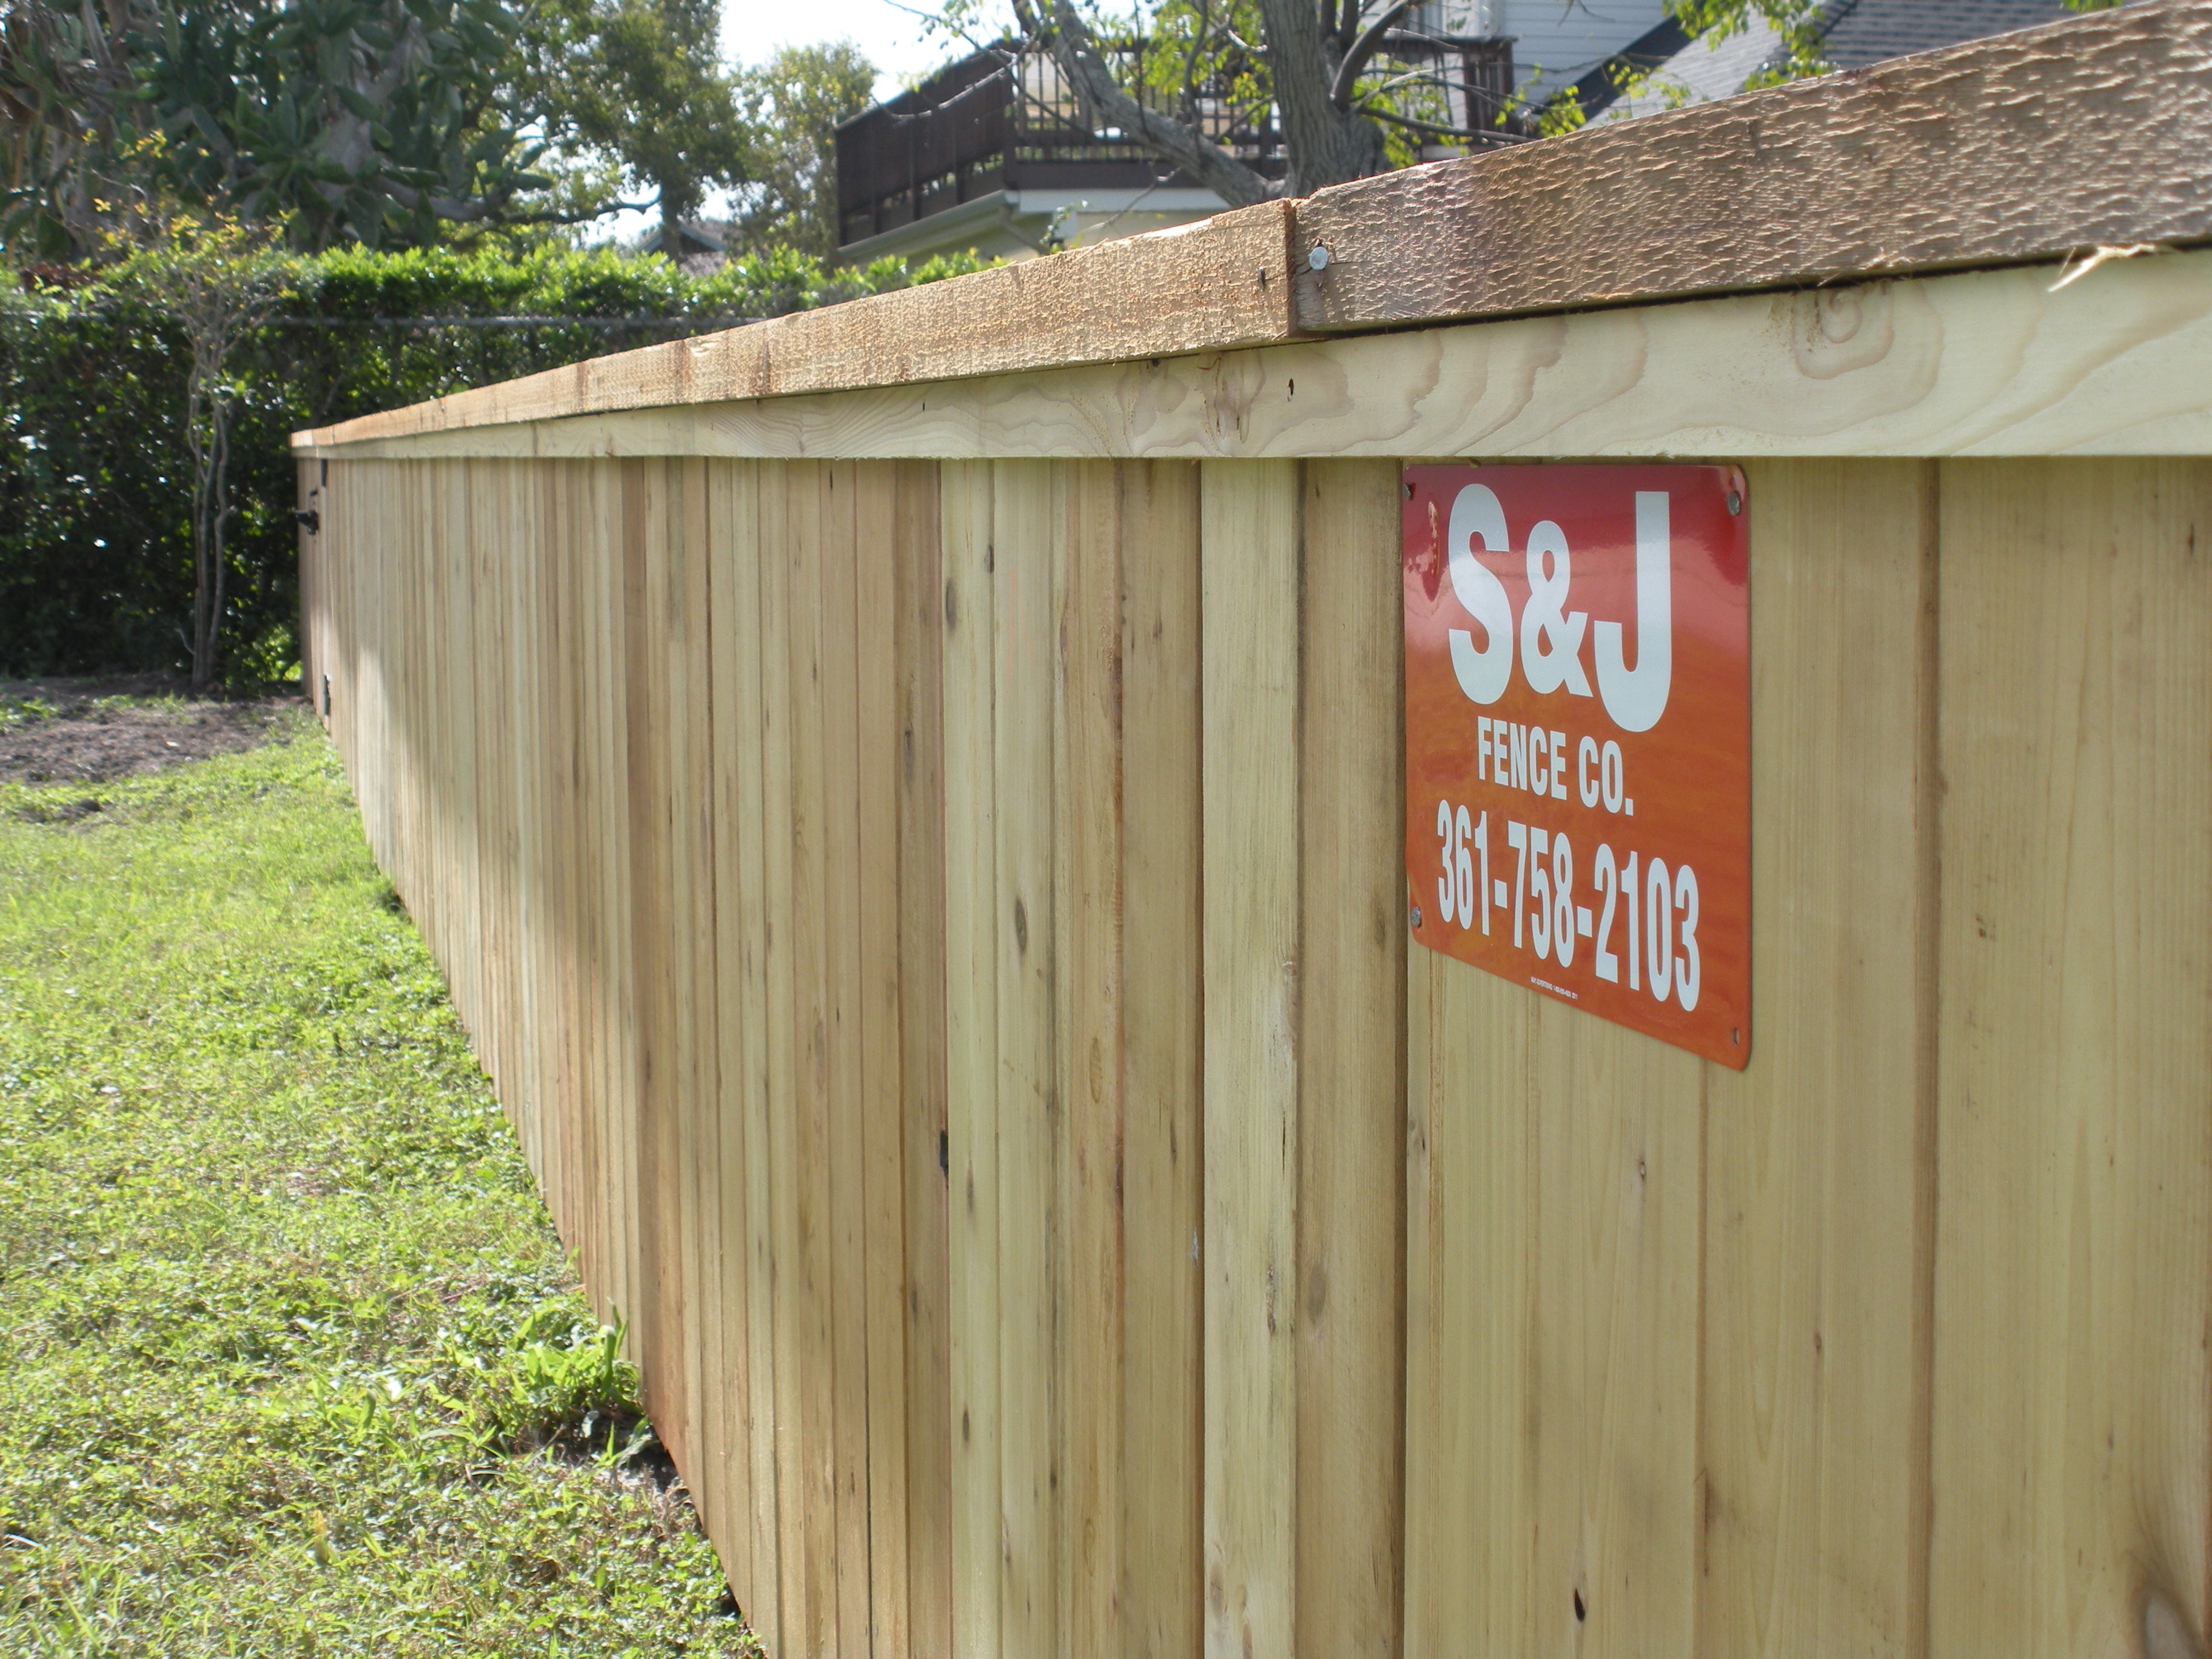 Sj fence co is the coastal bends best all around fence company cedar cap and trim wood fence baanklon Gallery